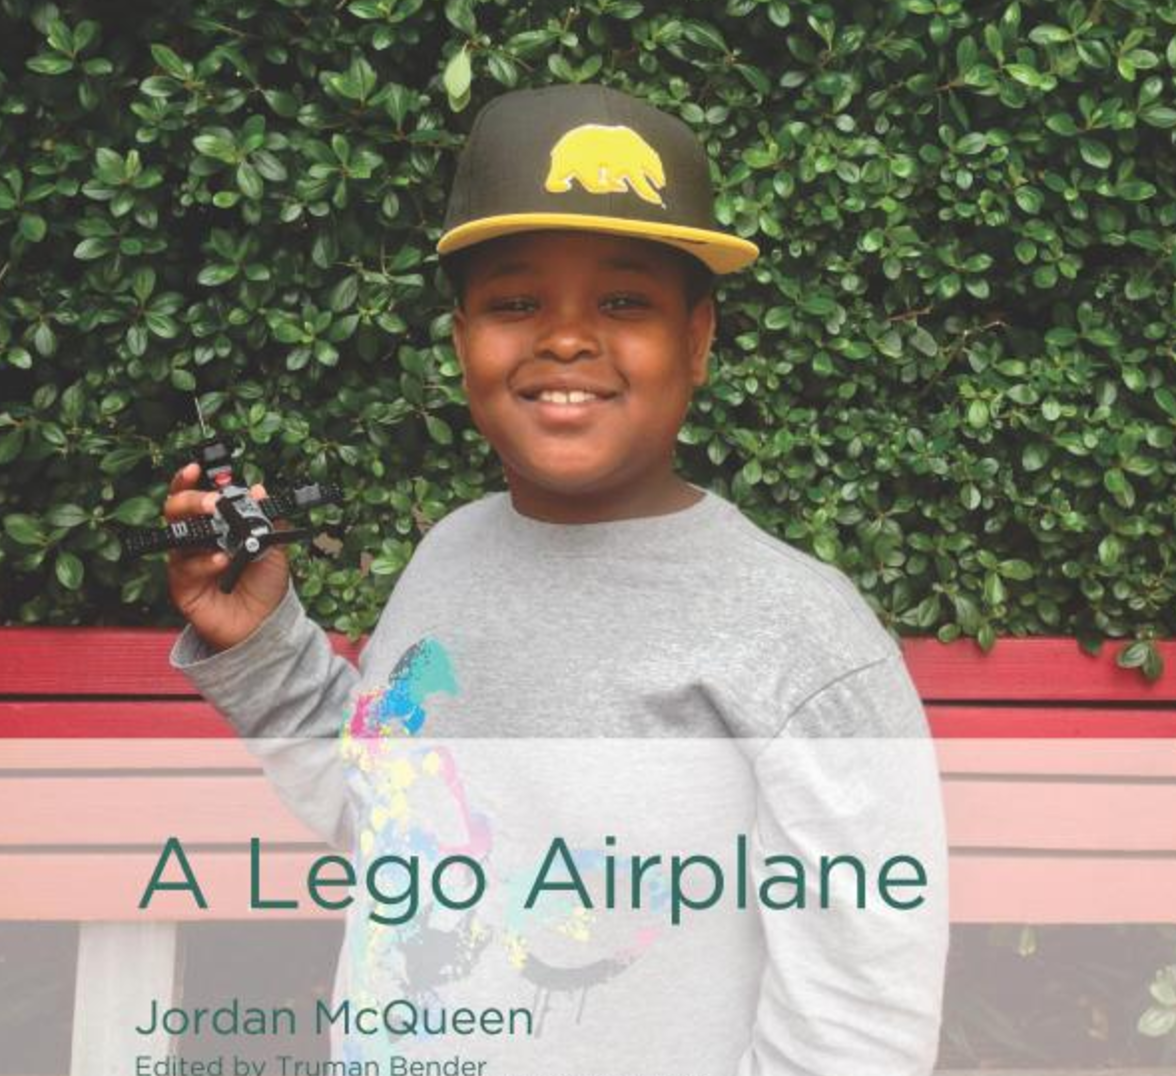 A Lego Airplane   Jordan McQueen introduces the beginning reader to the world of aviation. Step-by-step instructions introduce transition words and phrases and explain how to assemble A Lego Airplane.   Buy this book.